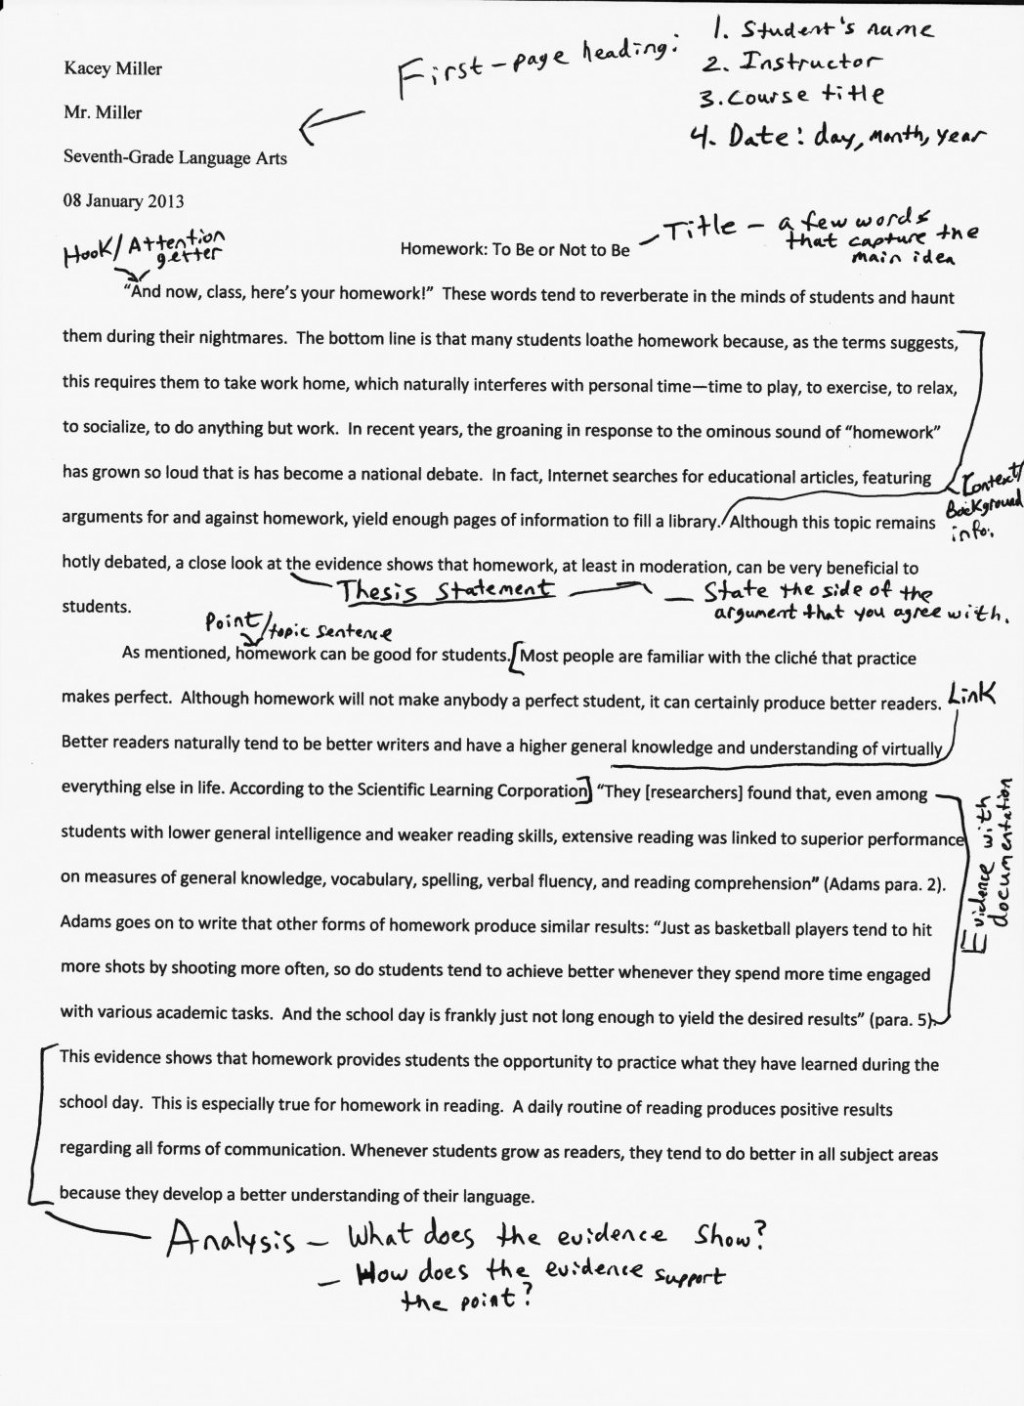 011 Word Essay Example Words Page Funny College Free Unforgettable 700 How Many Pages On Save Fuel Format Large